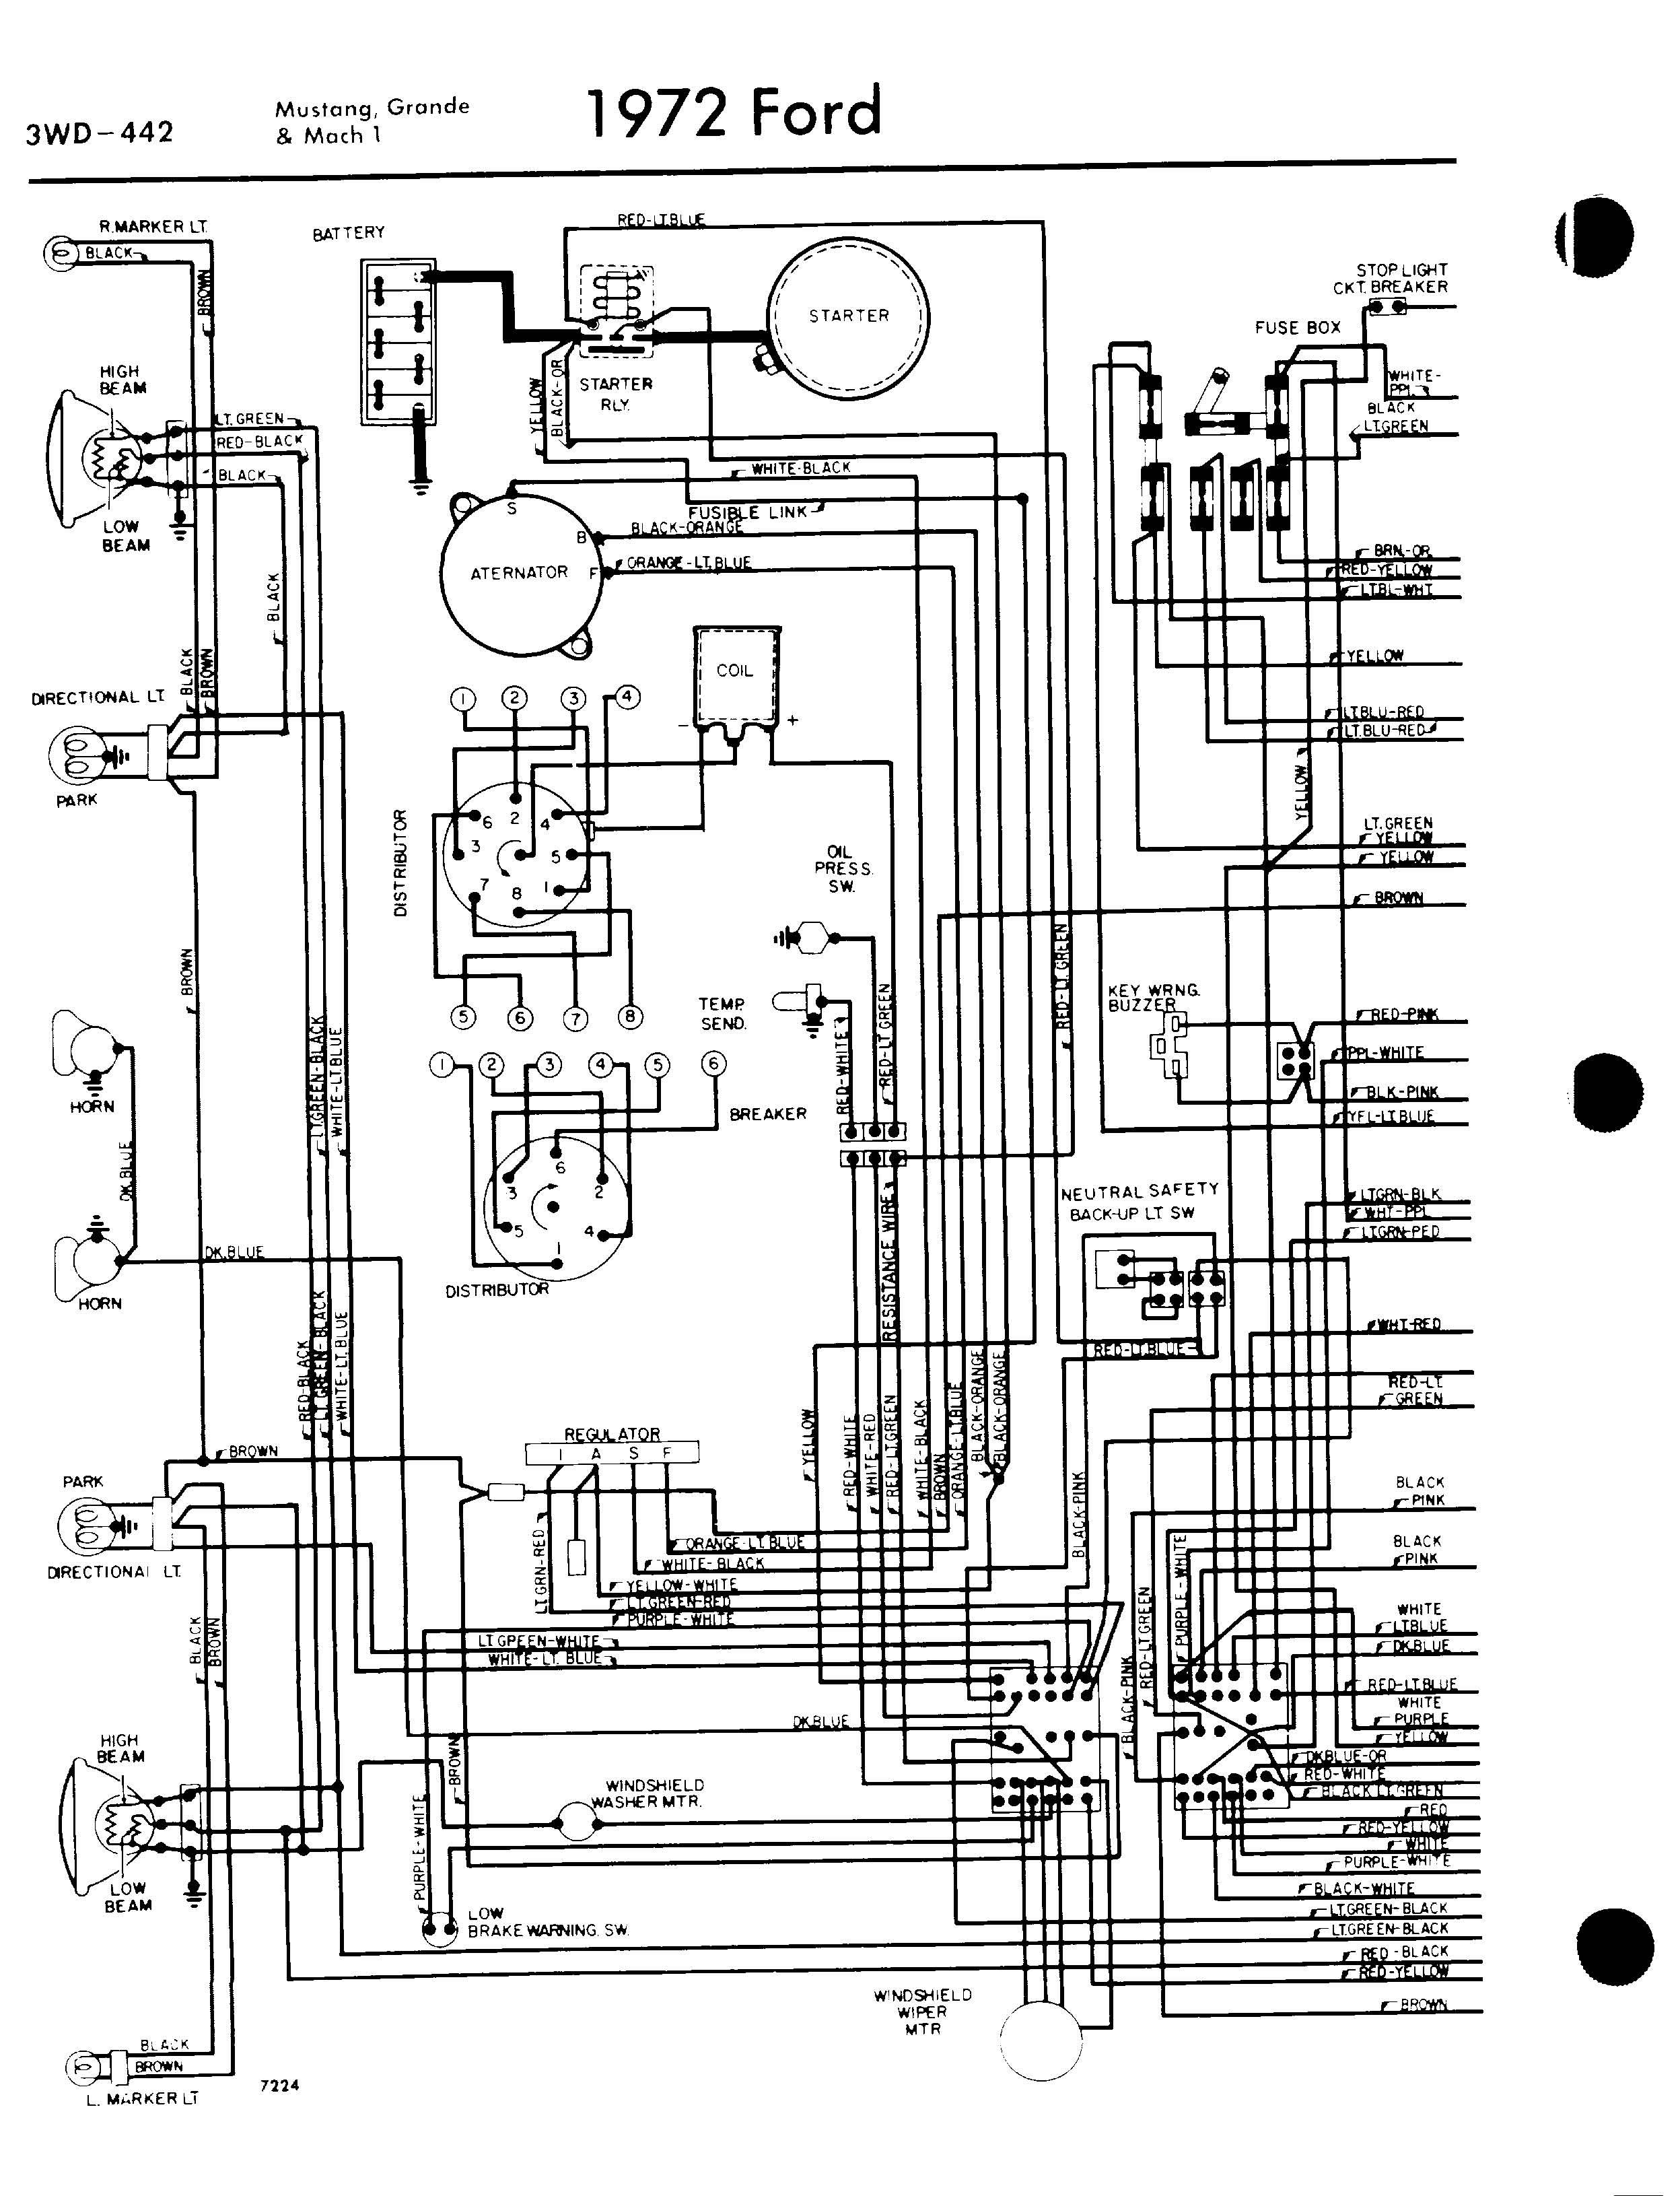 72 Mach1 Alternator Wire Harness Diagram Yahoo Search Results Yahoo Image Search Results Alternator Electrical Circuit Diagram Diagram